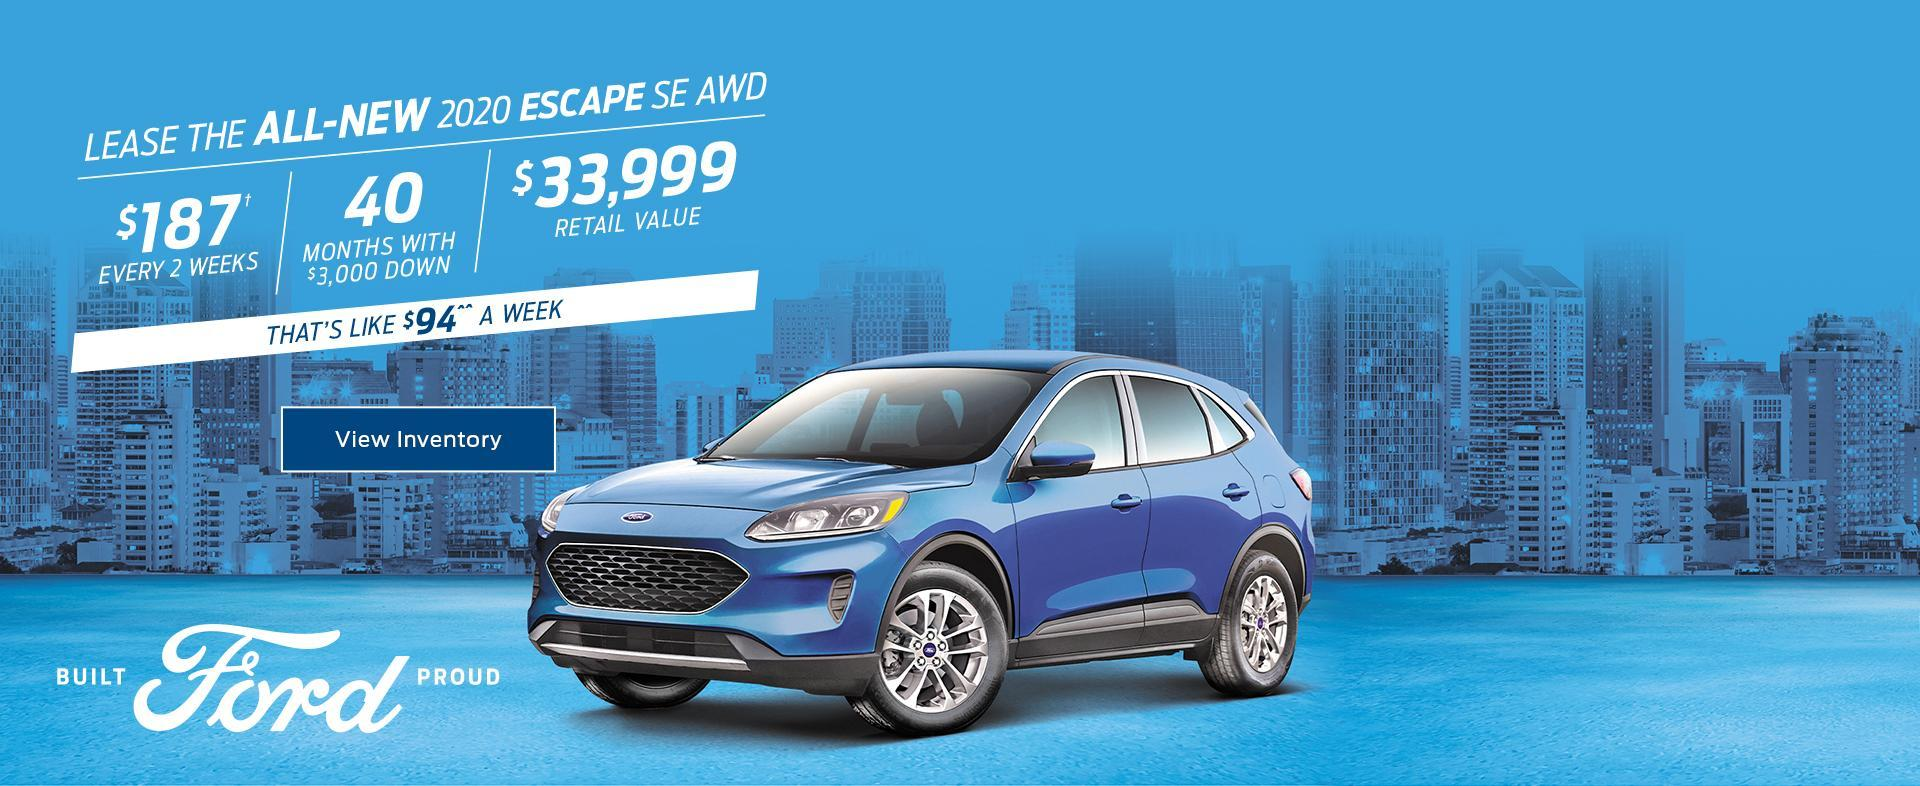 2020 Ford Escape February Lease